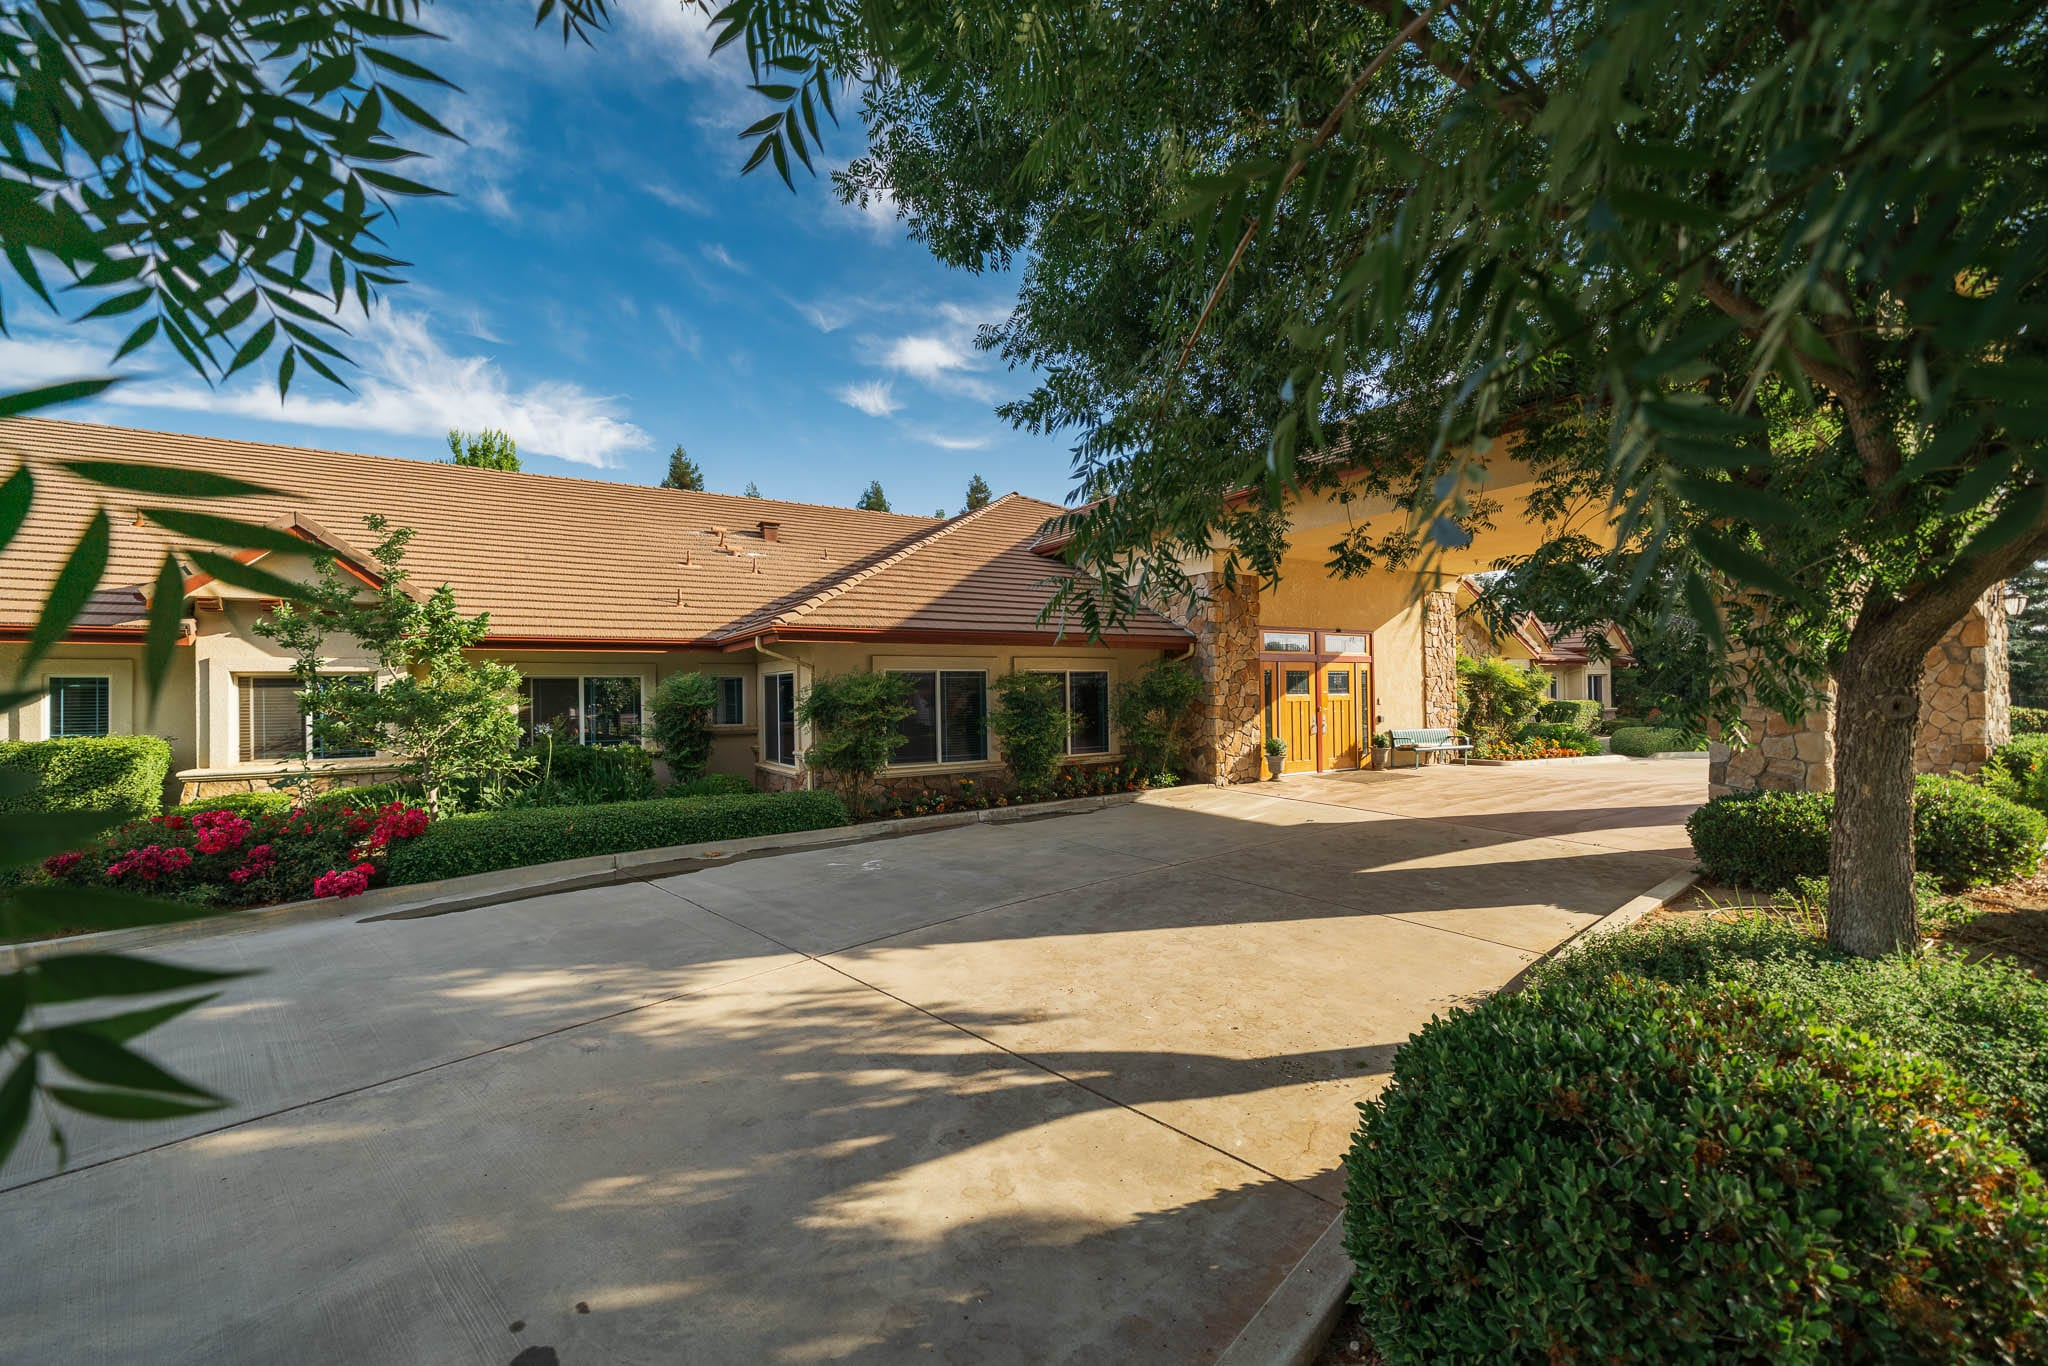 Sierra Village Assisted Living Facility